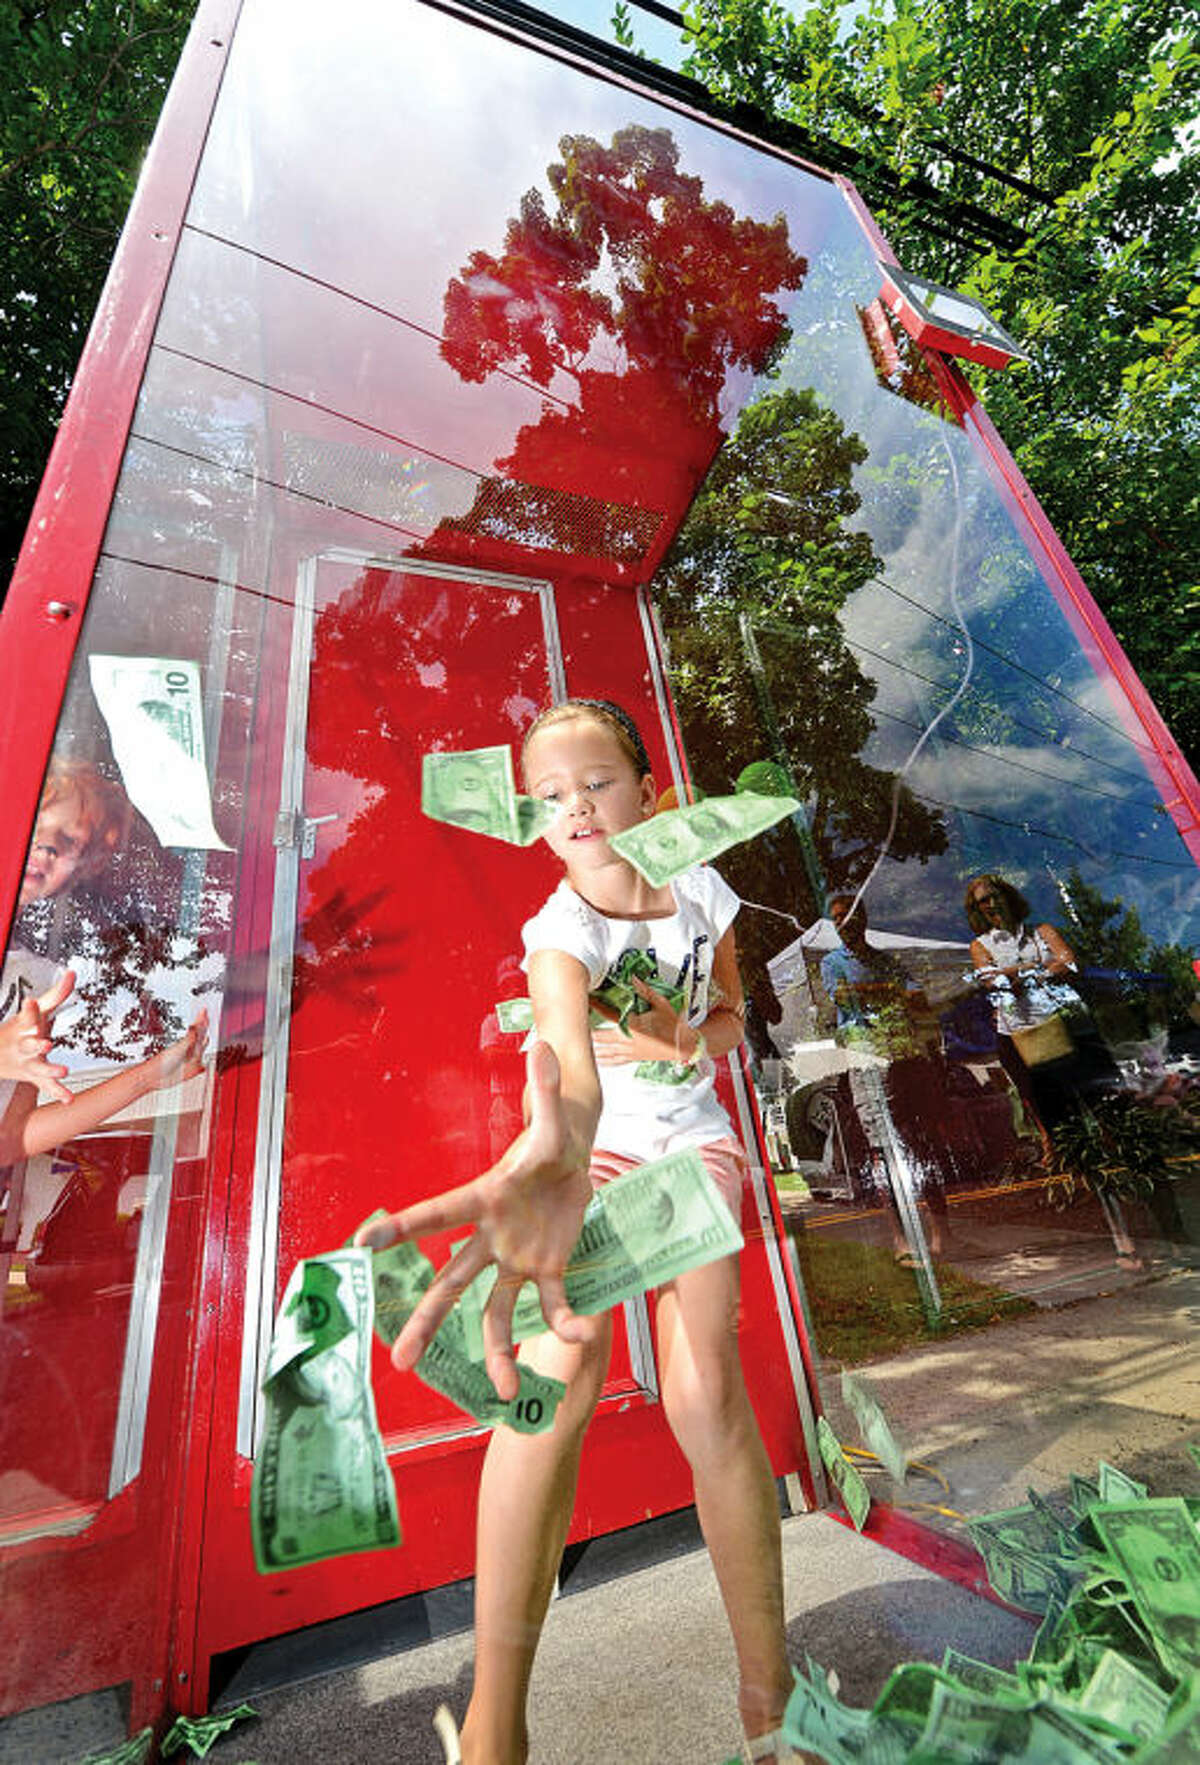 Hour photo / Erik Trautmann Lucia La Orden, 8, tries to grab as many bills as she can to win a raffle prize from Bankwell during the 3rd annual Wilton Street Fair and Sidewalk Sale in Wilton Center Saturday.